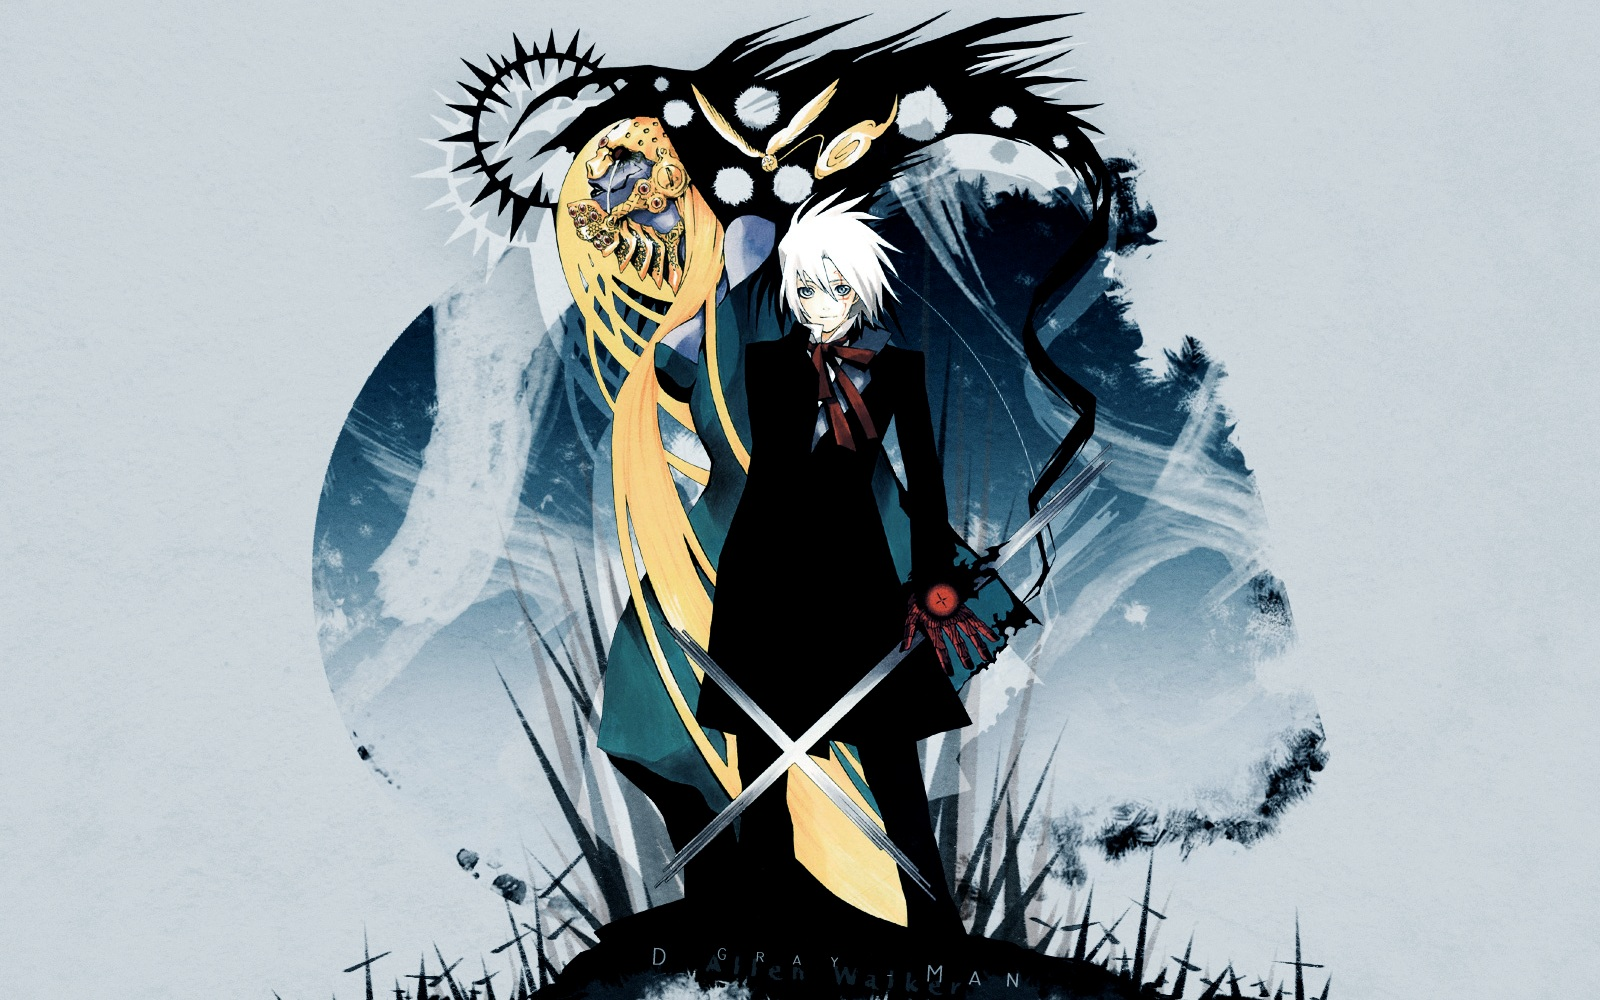 D gray man wallpaper hd 8 anime background - D gray man images ...